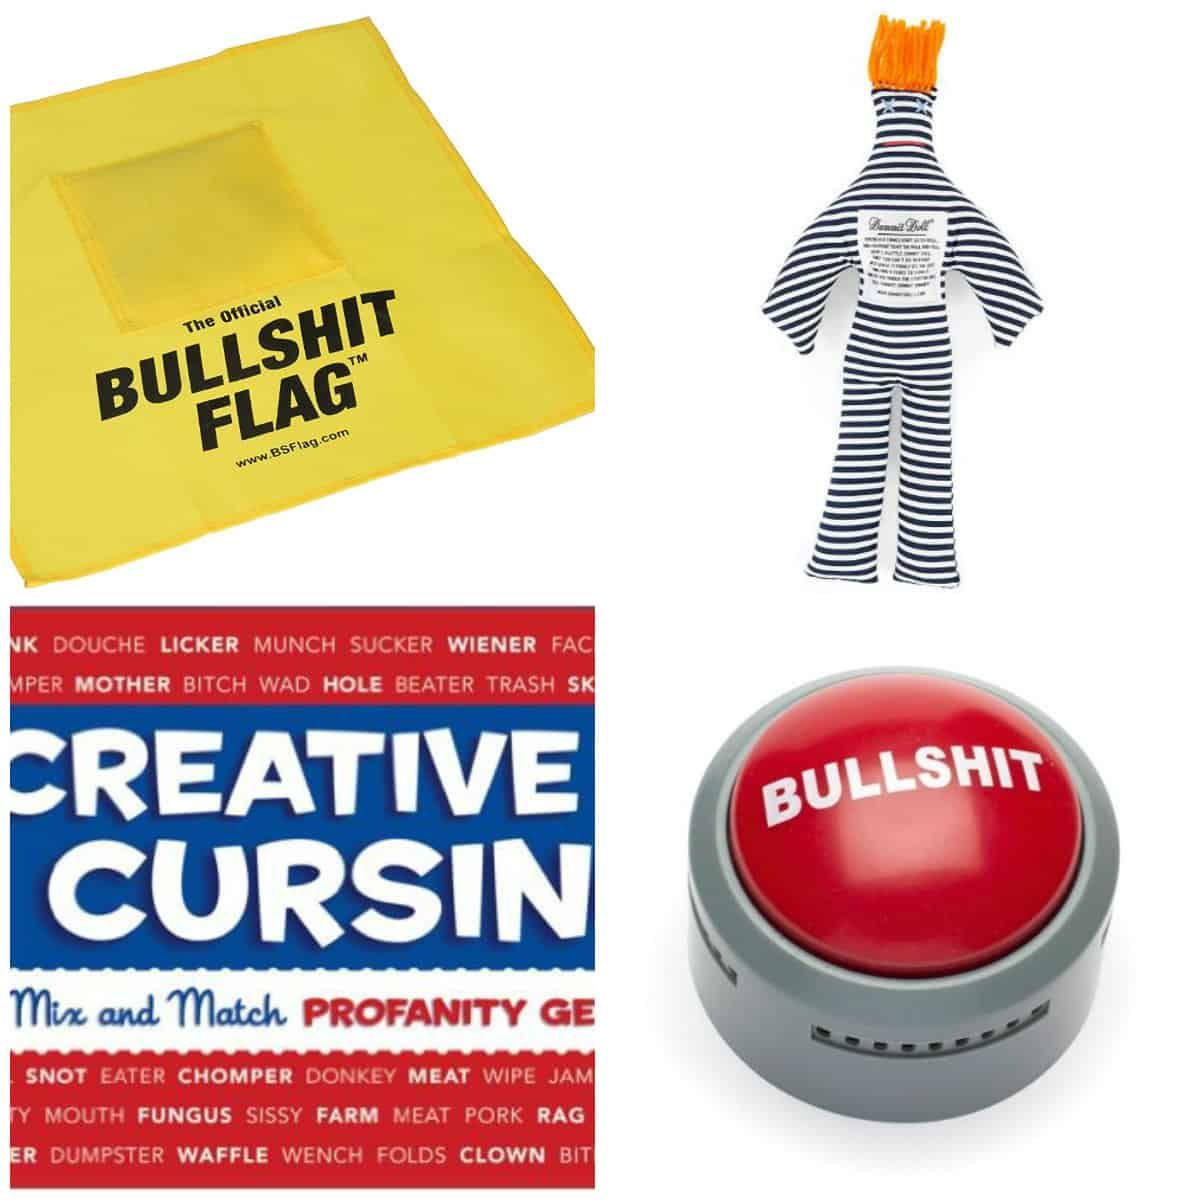 20 Funny And Creative White Elephant Gift Exchange Ideas All Under 20 And Perf White Elephant Gifts Funny White Elephant Gifts White Elephant Gifts Exchange